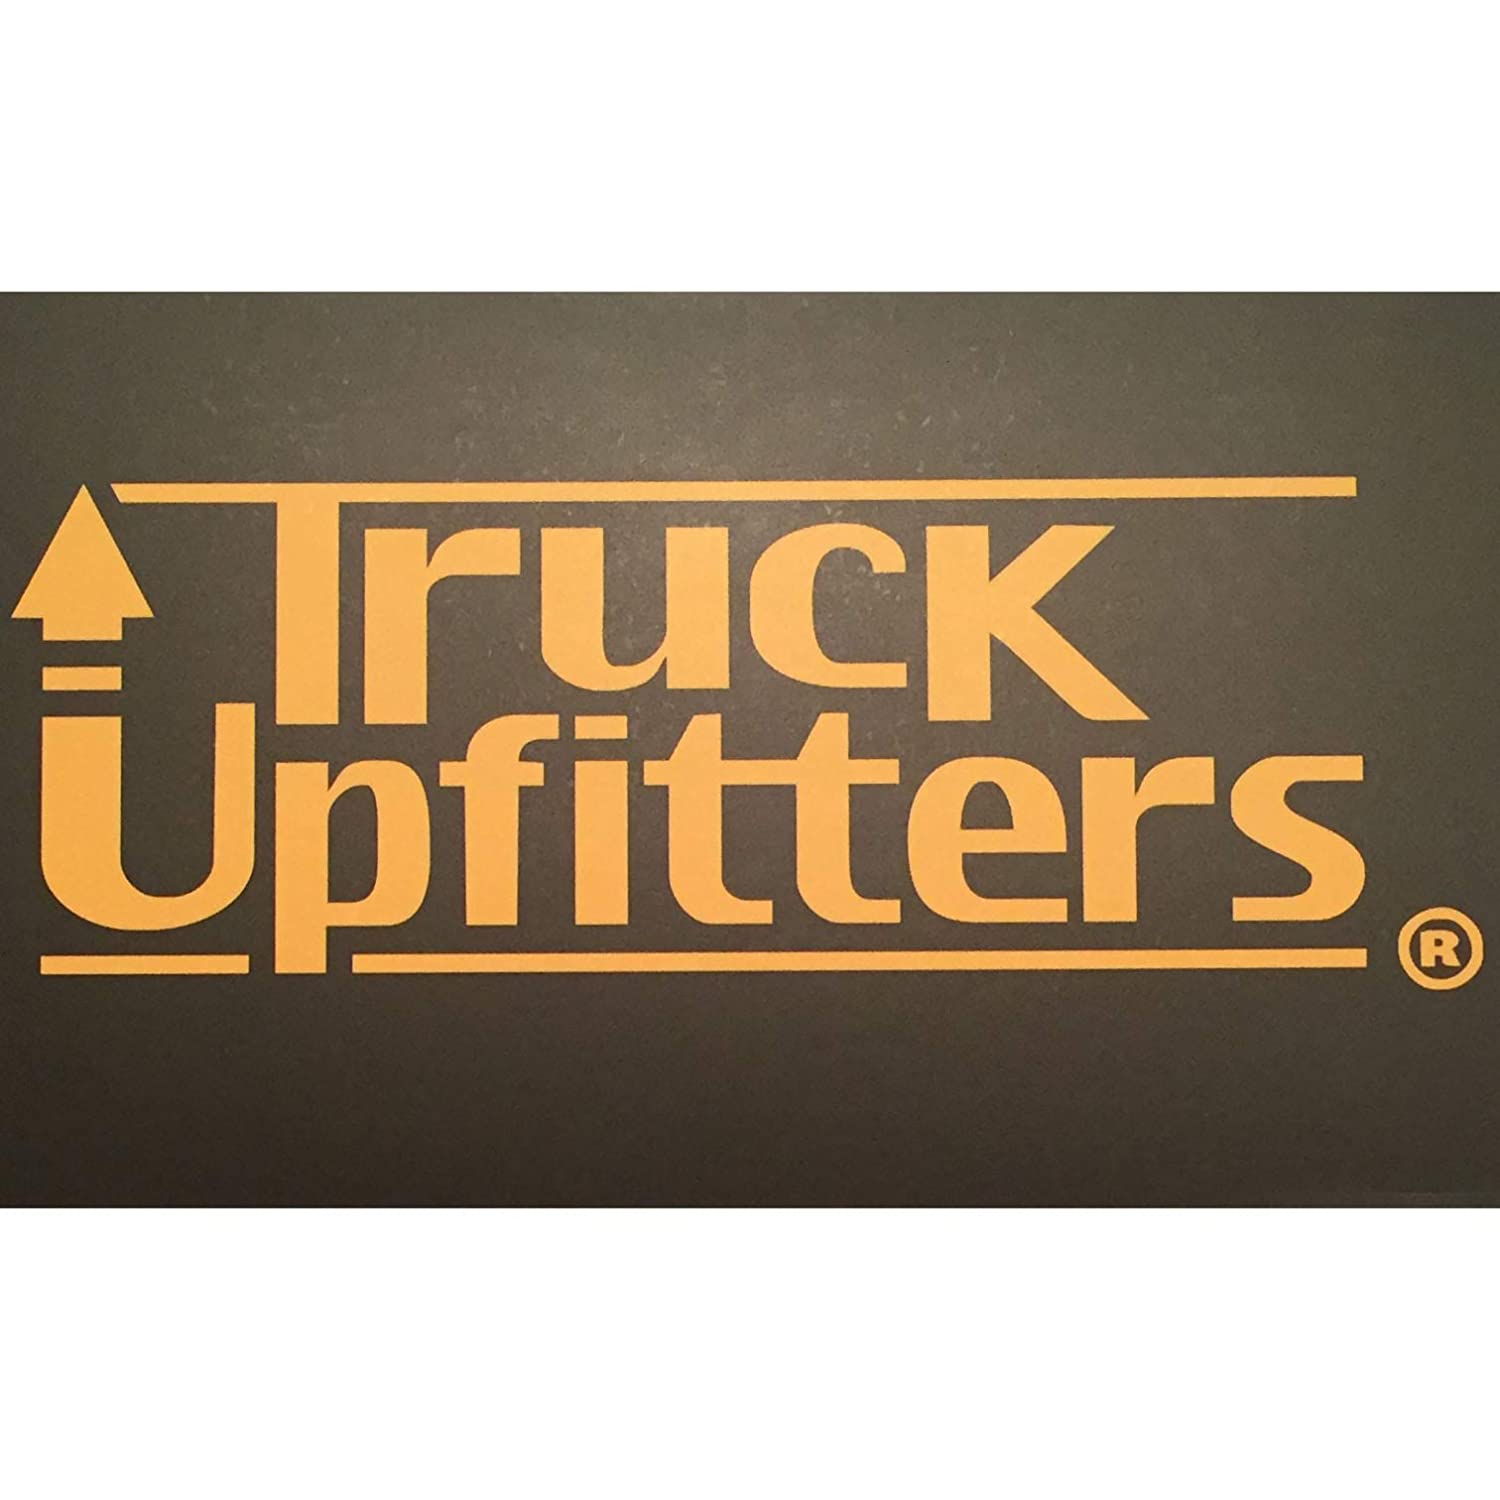 15.7 extended, 9.4 compressed, 45 pounds of pressure ea MEASUREMENT REQUIRED for ARE ATC Incl 4 ball mounts! 2 Truck Upfitters 16 Gas Props Snugtop Leer Camper Shell//Truck Cap Rear Door